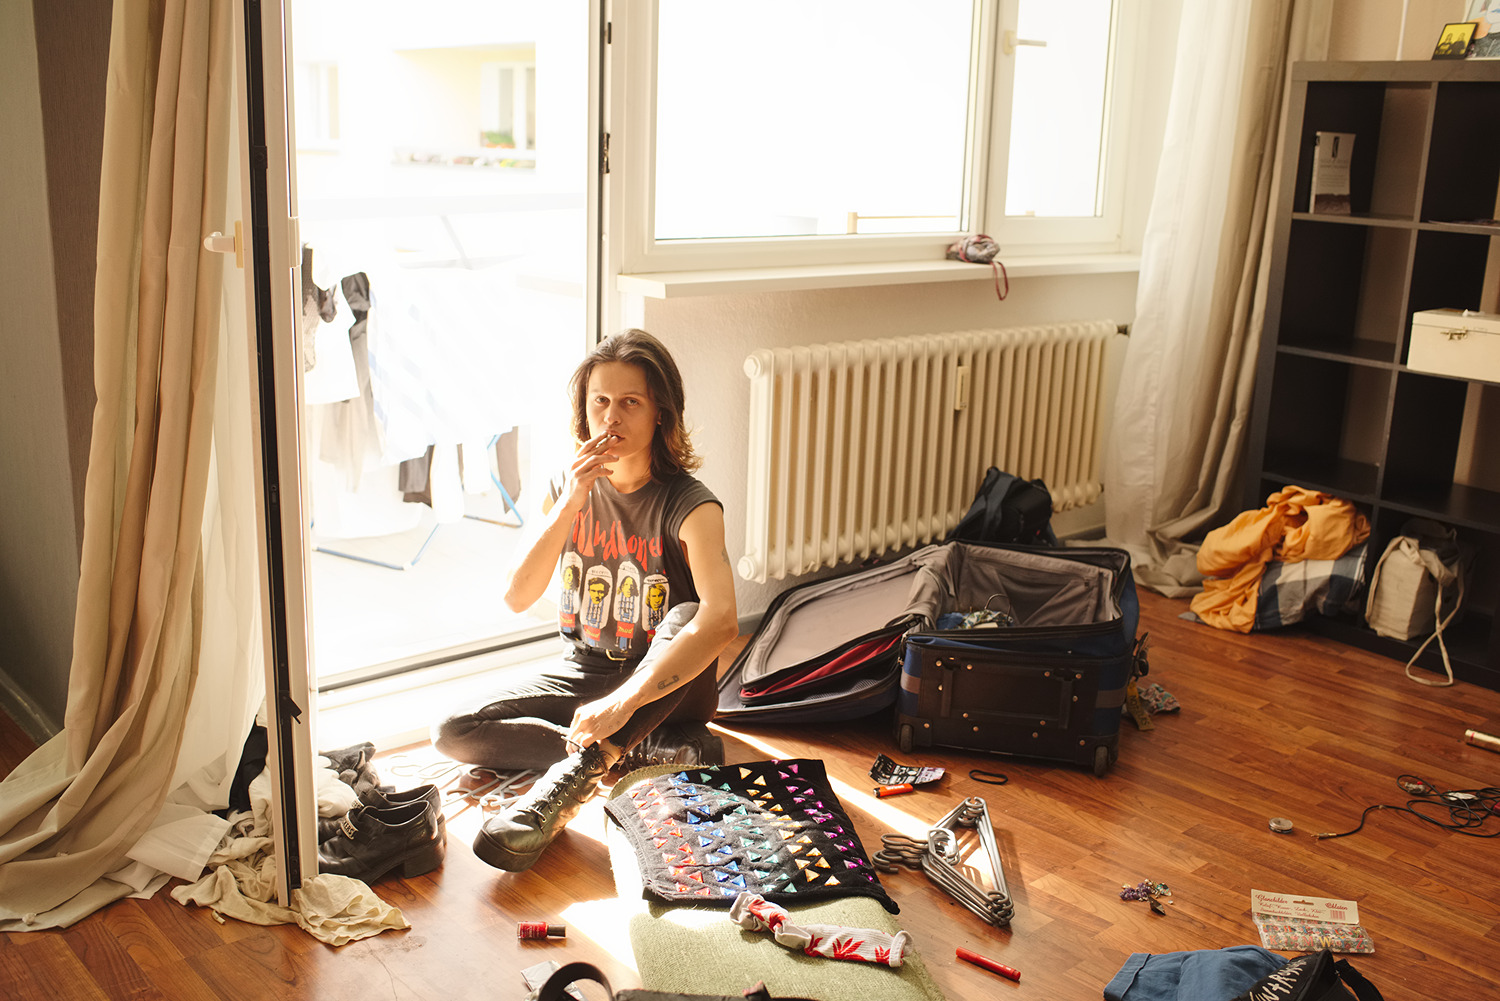 V moving out, Berlin, 2016